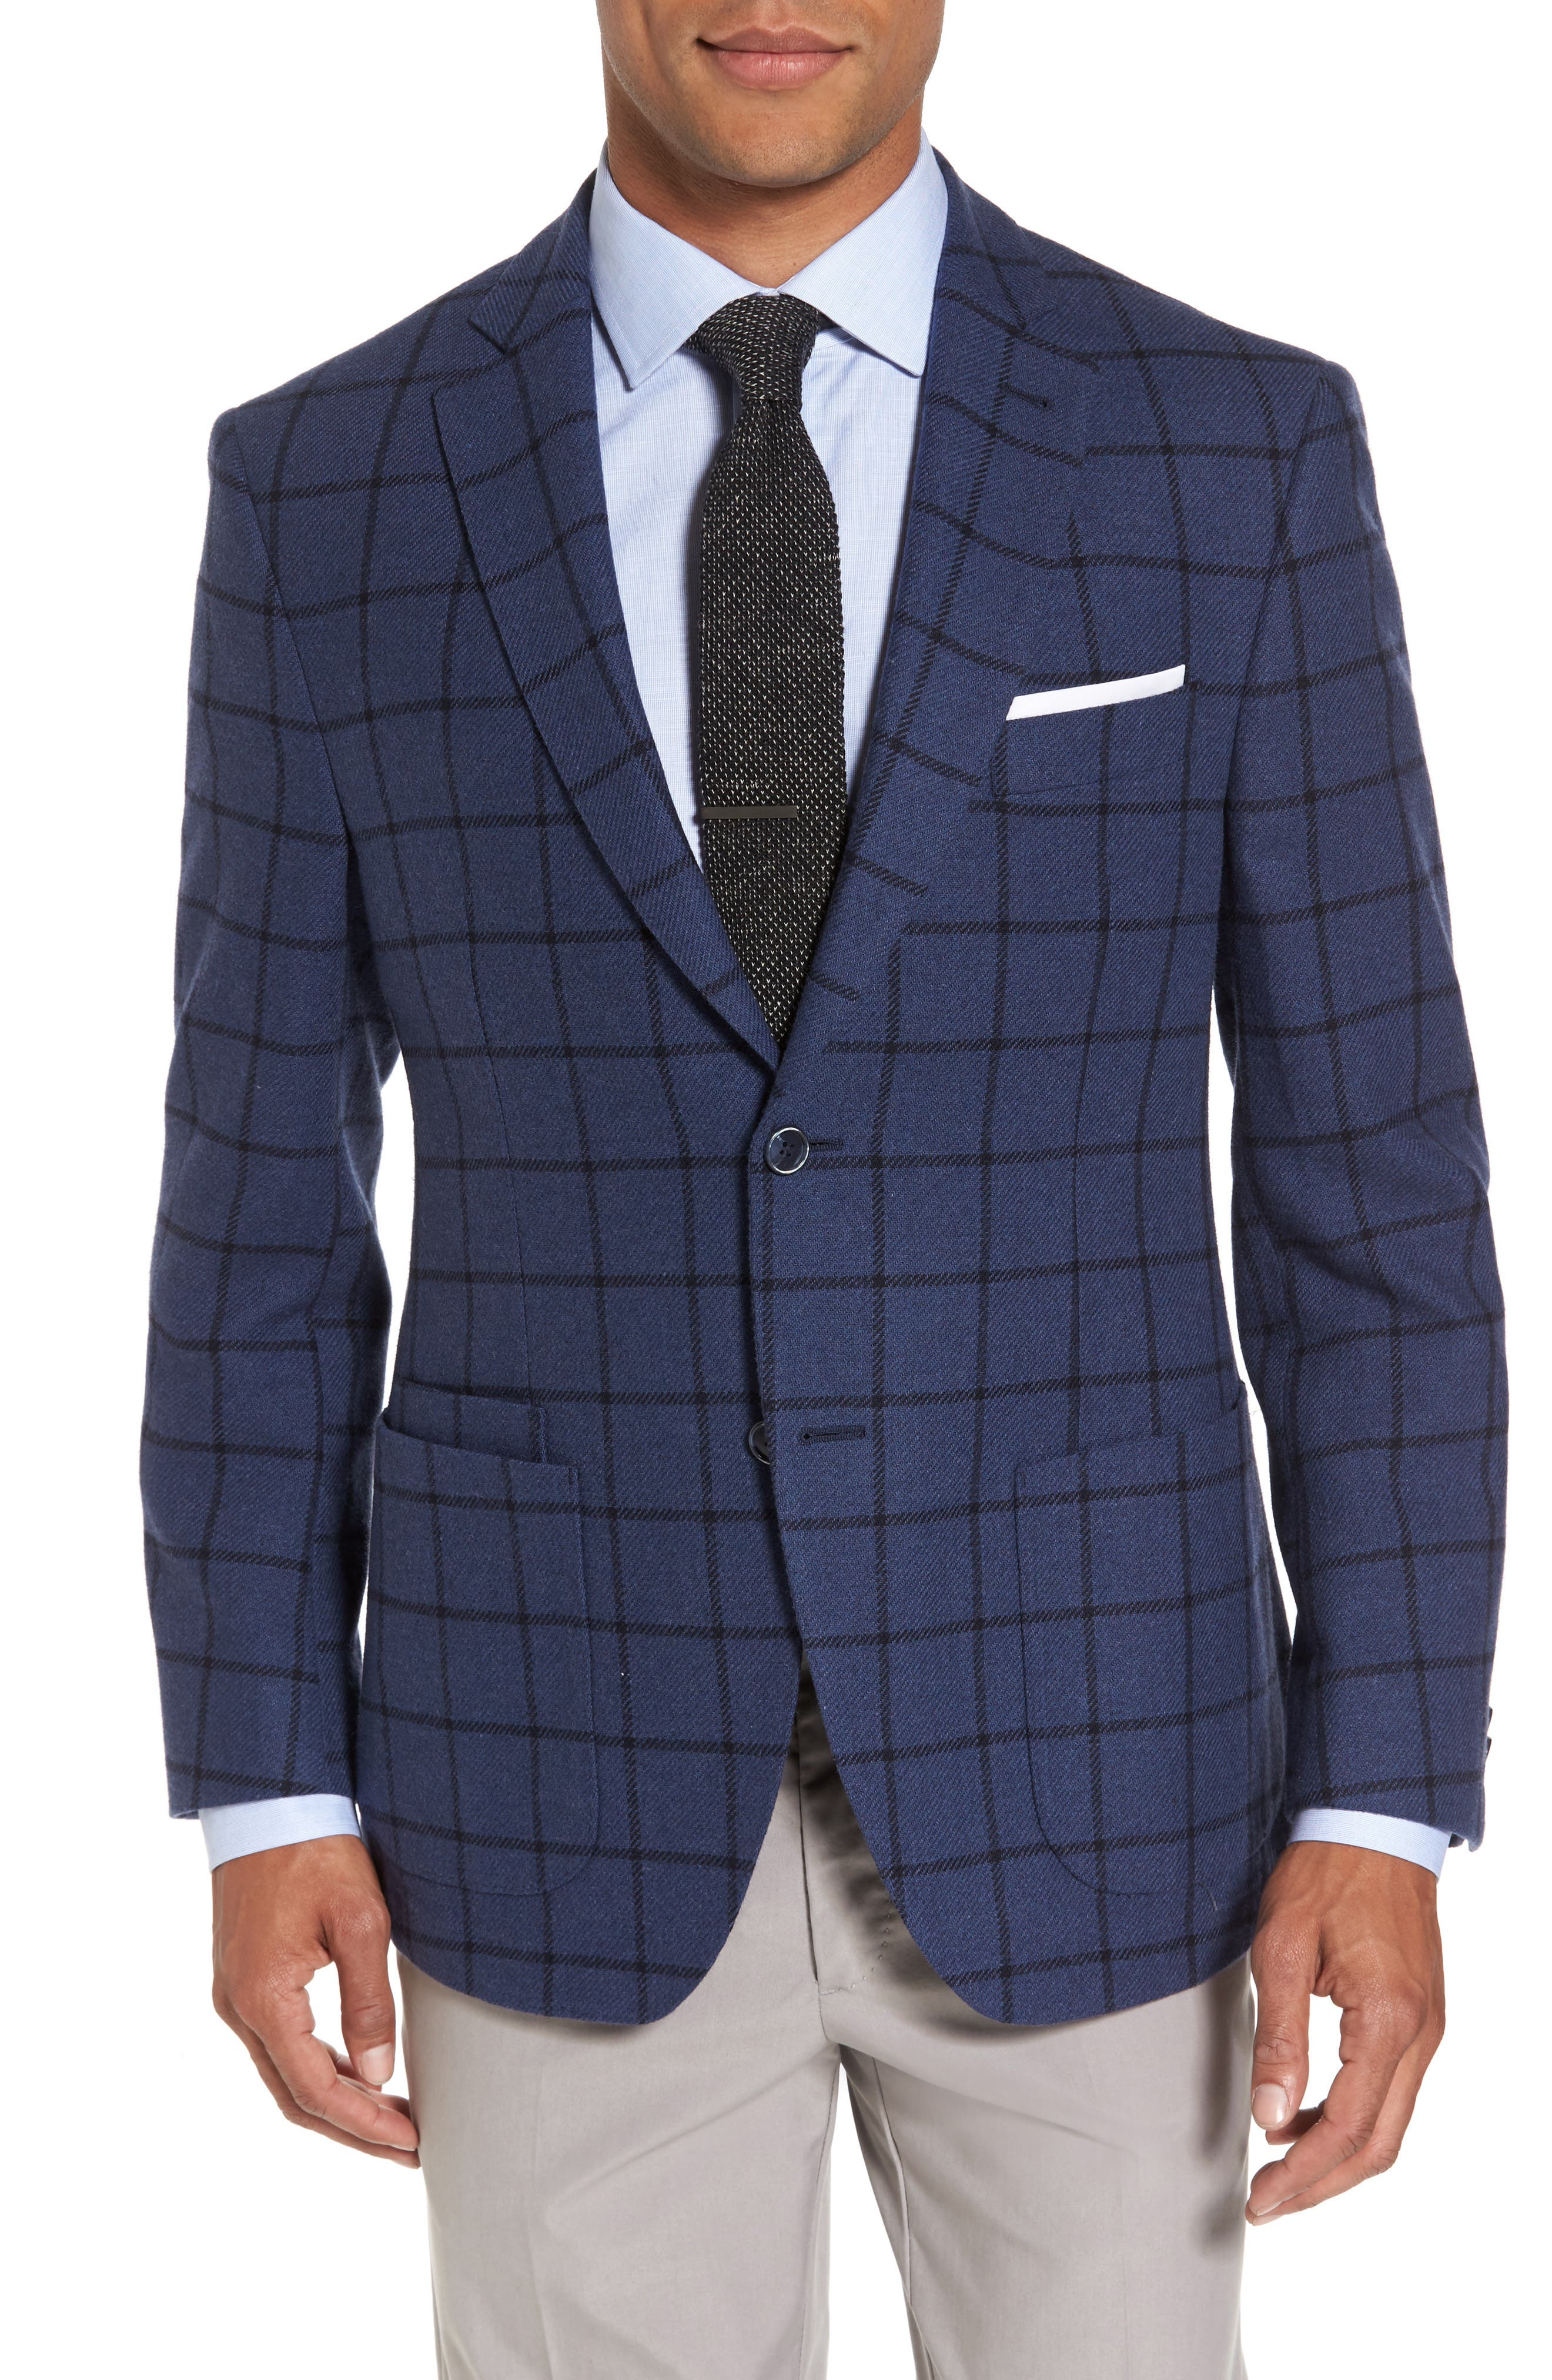 Alternate Image 1 Selected - JKT New York Trim Fit Windowpane Wool Blend Sport Coat